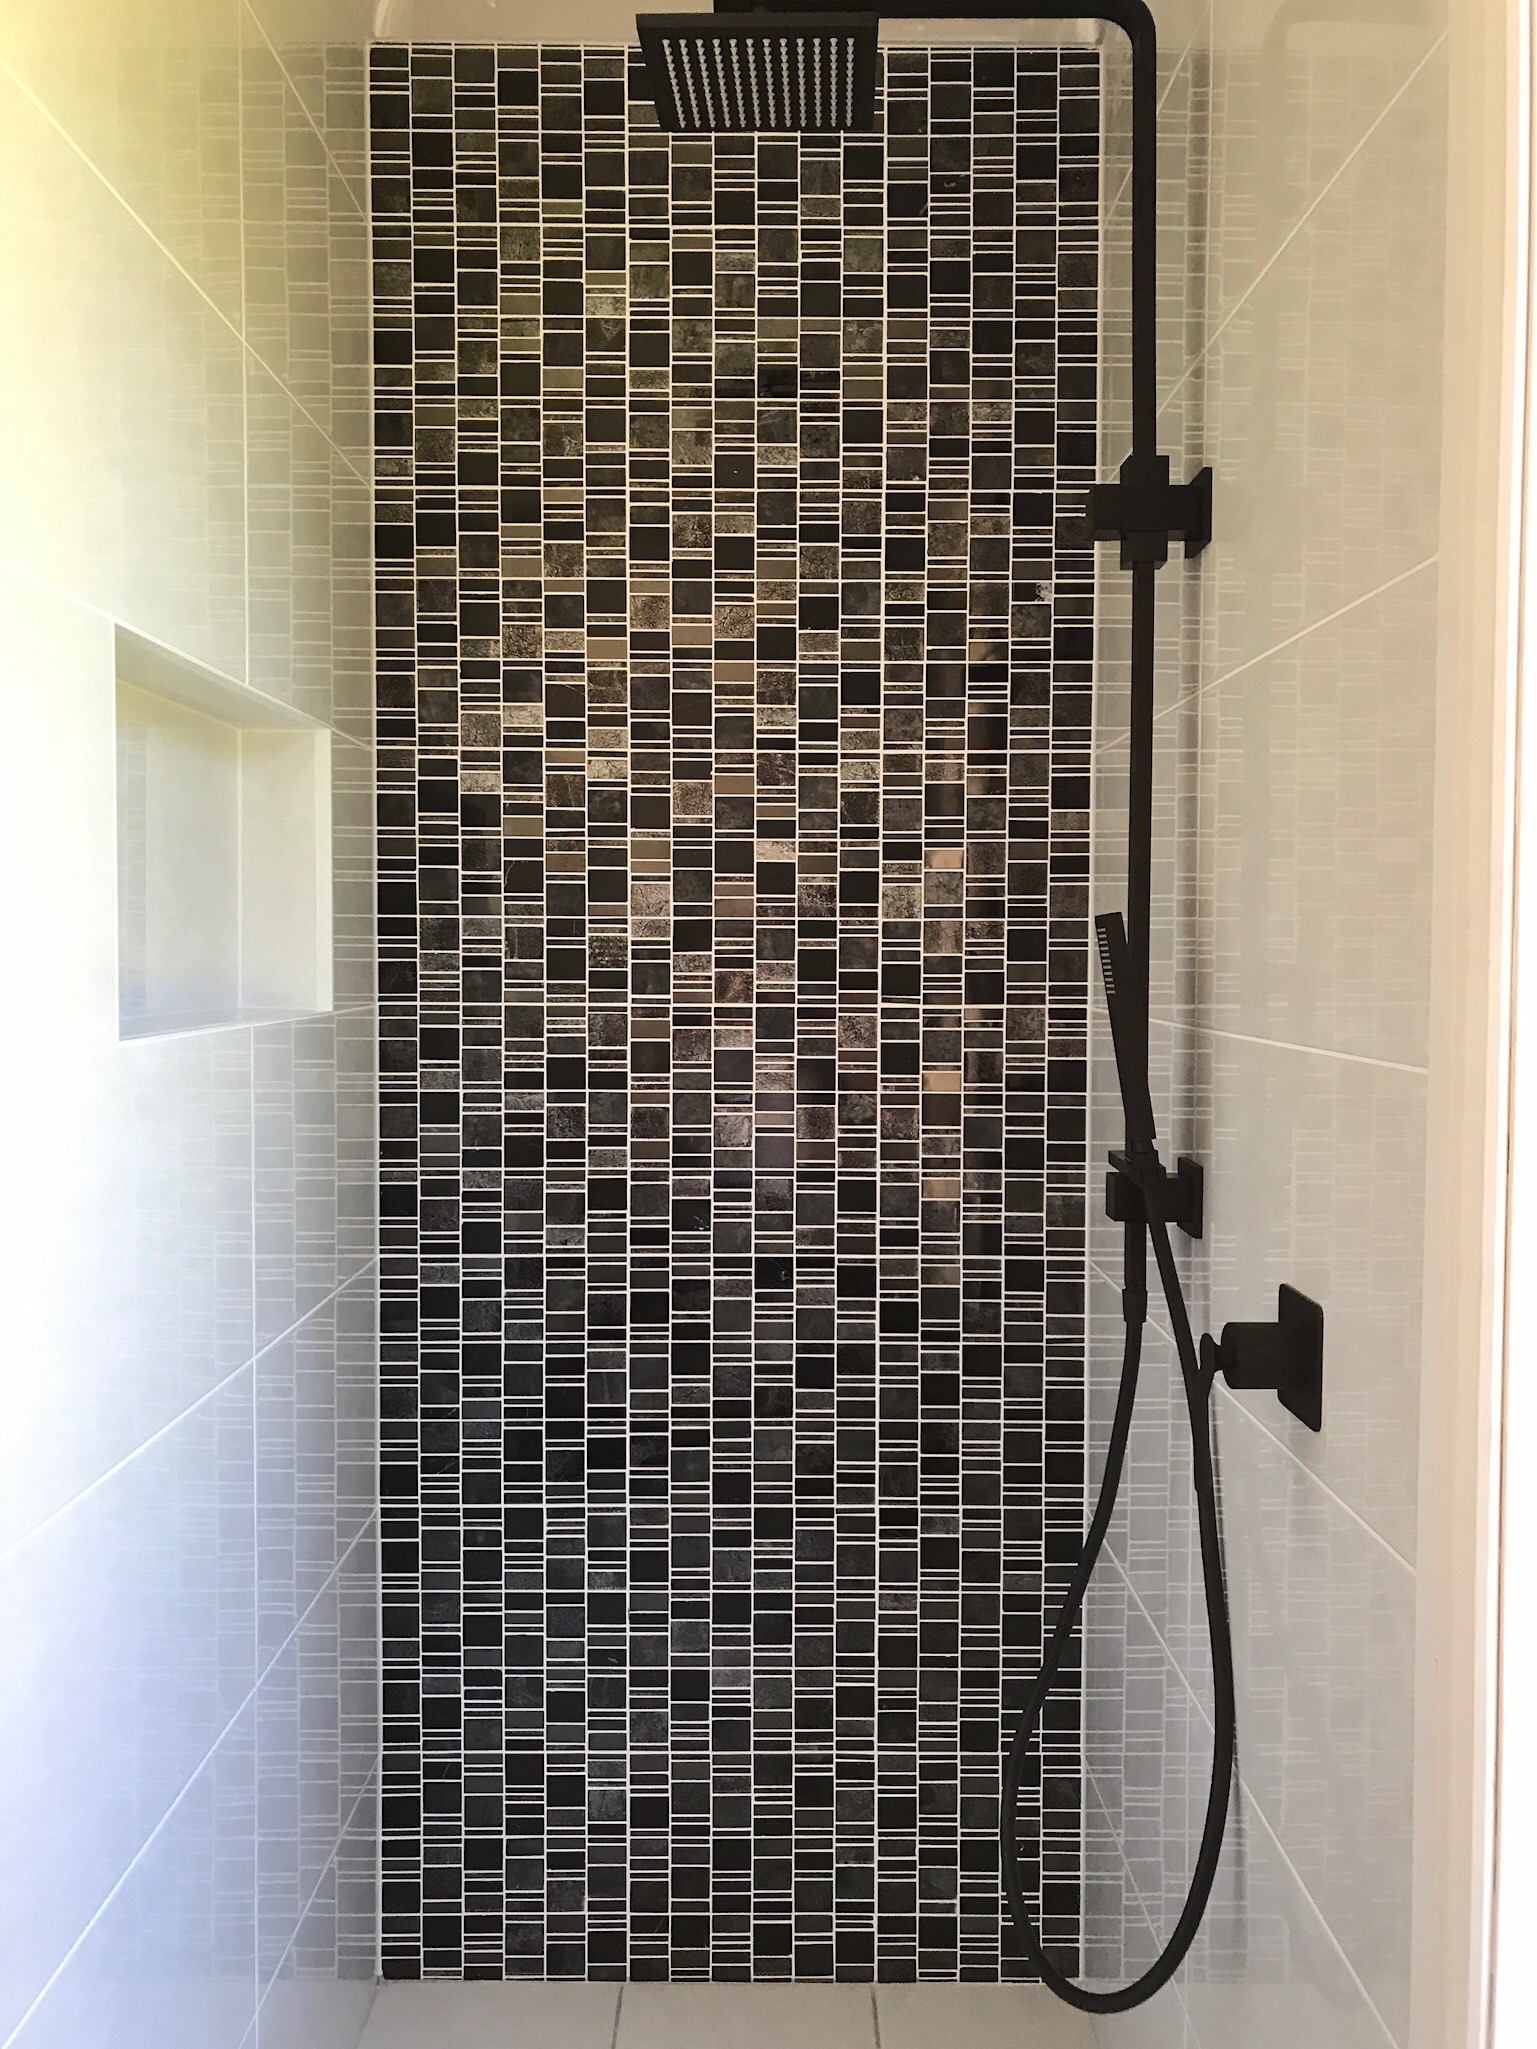 How to Choose Tiles for your Bathroom Renovation